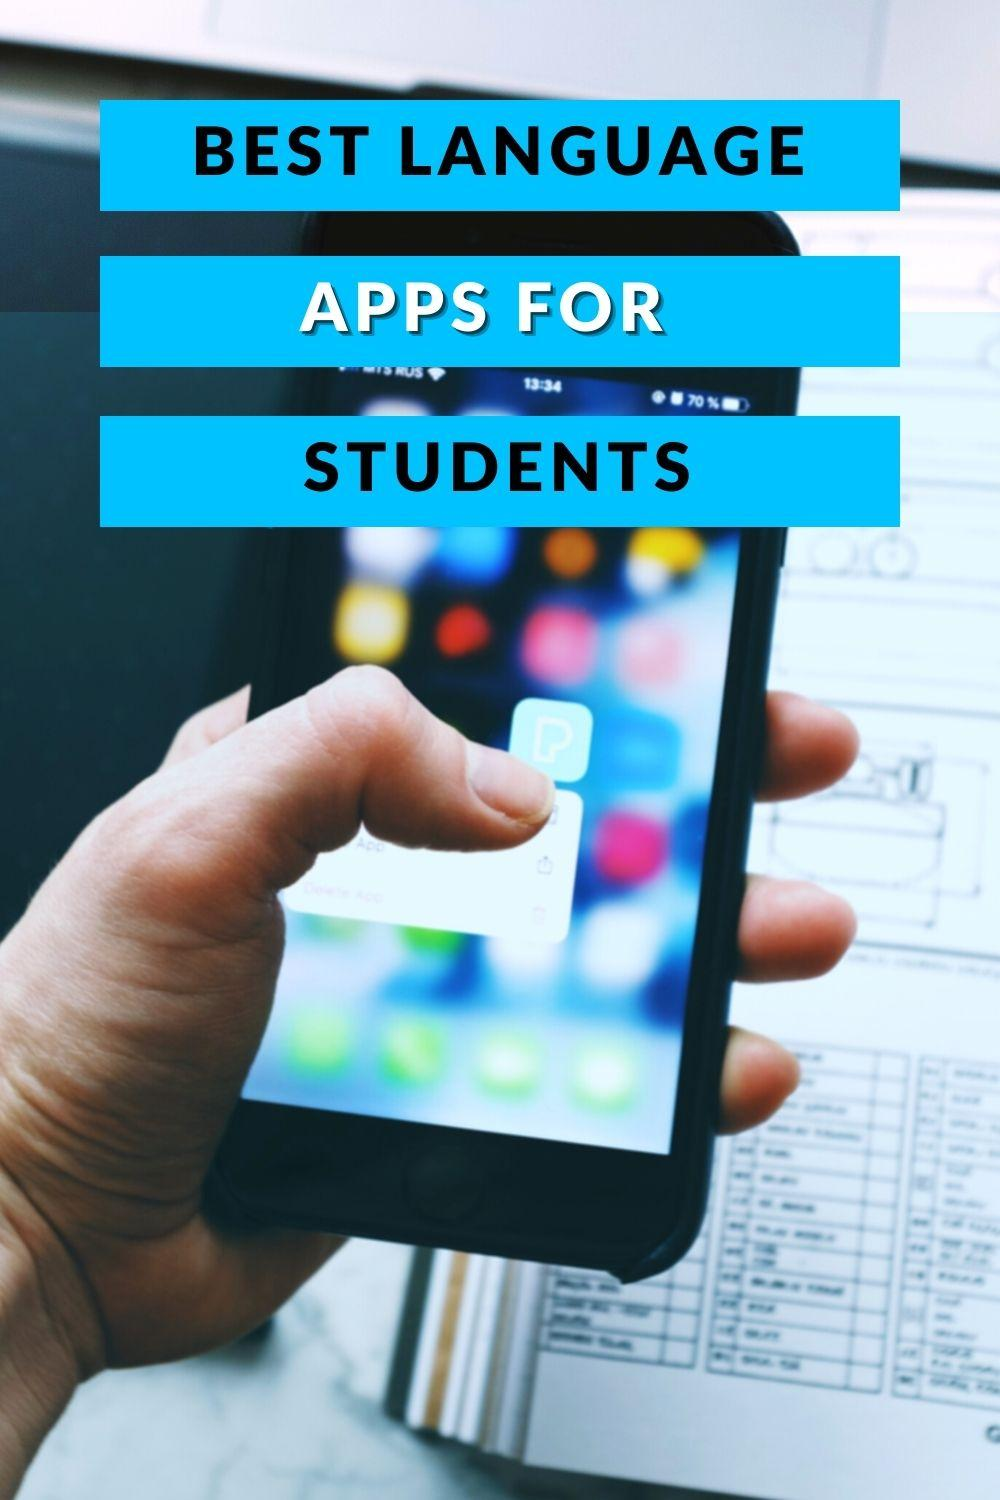 Best Language Apps for Students